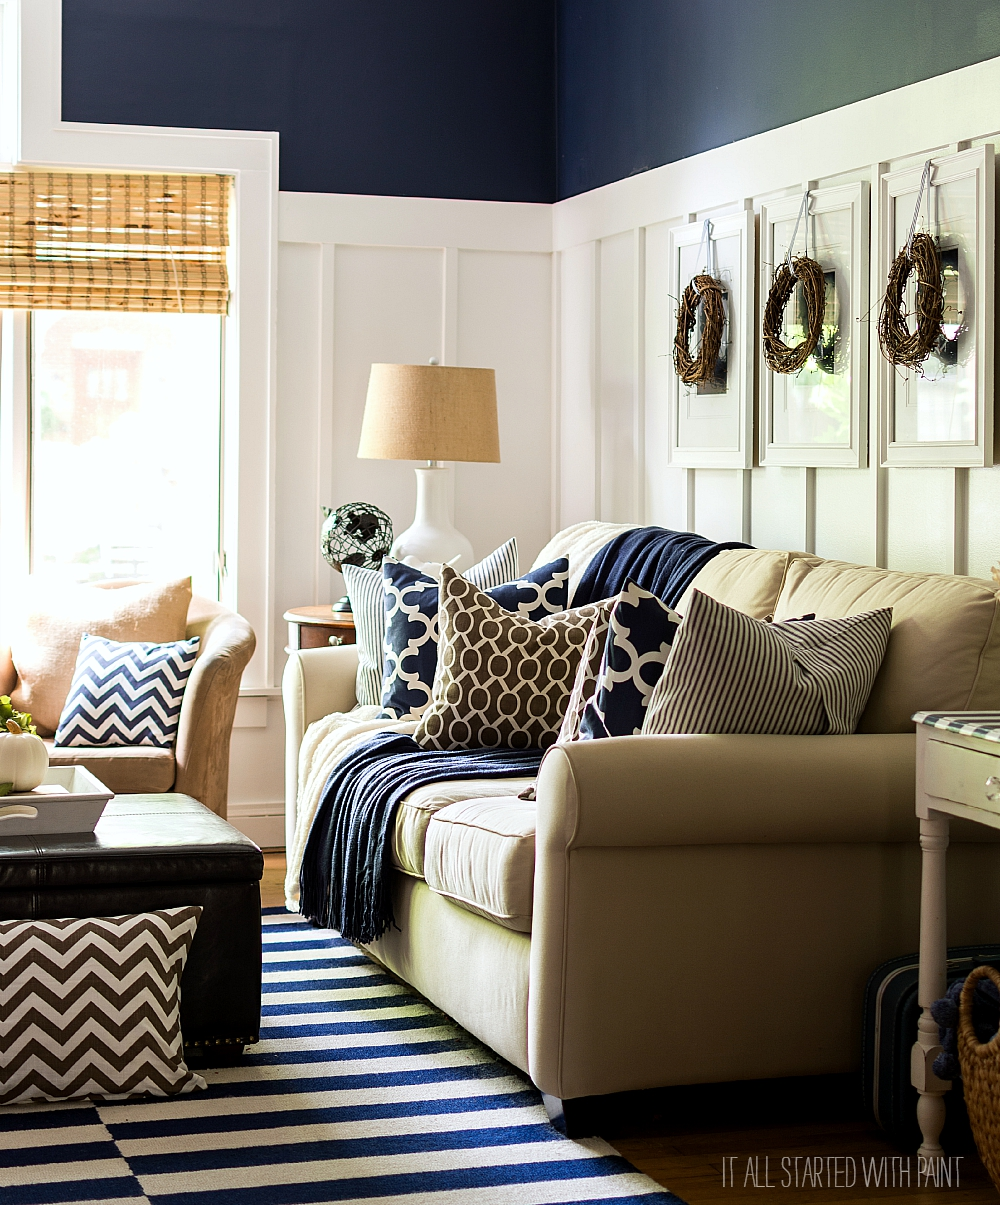 Fall Decorating Ideas Using Brown And Navy Neutrals Board Batten Living Room Decorated For